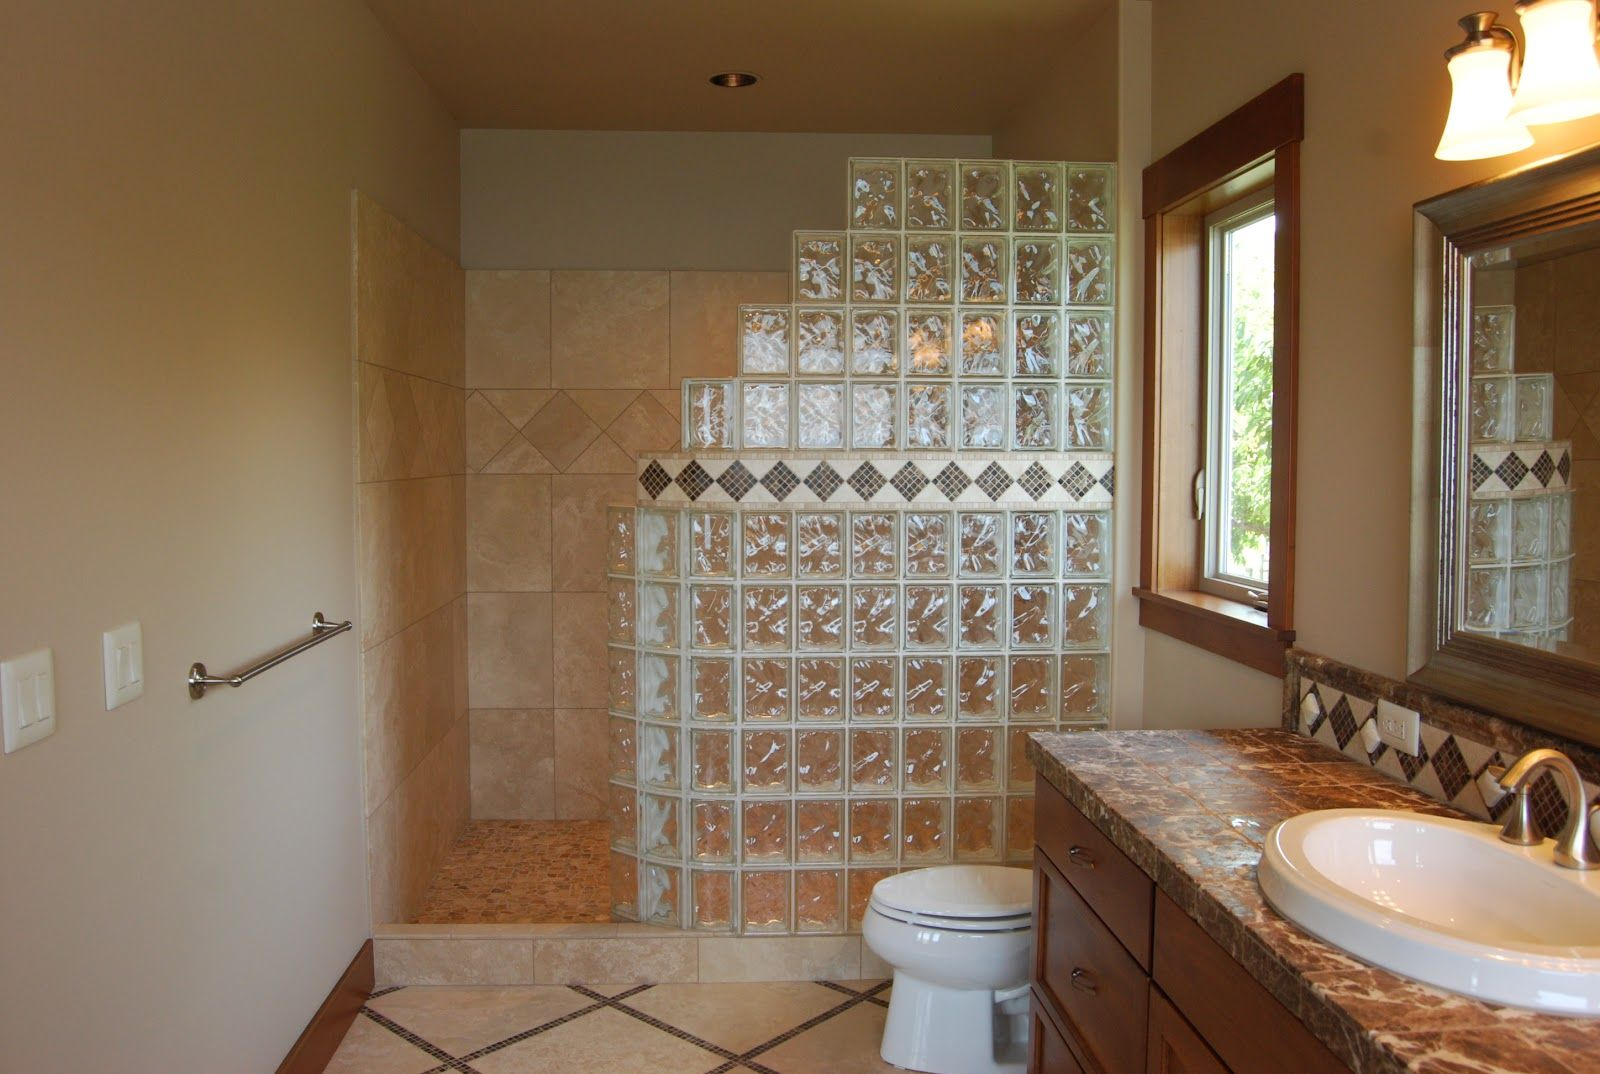 Glass brick shower designs seattle glass block glass for Glass bricks designs